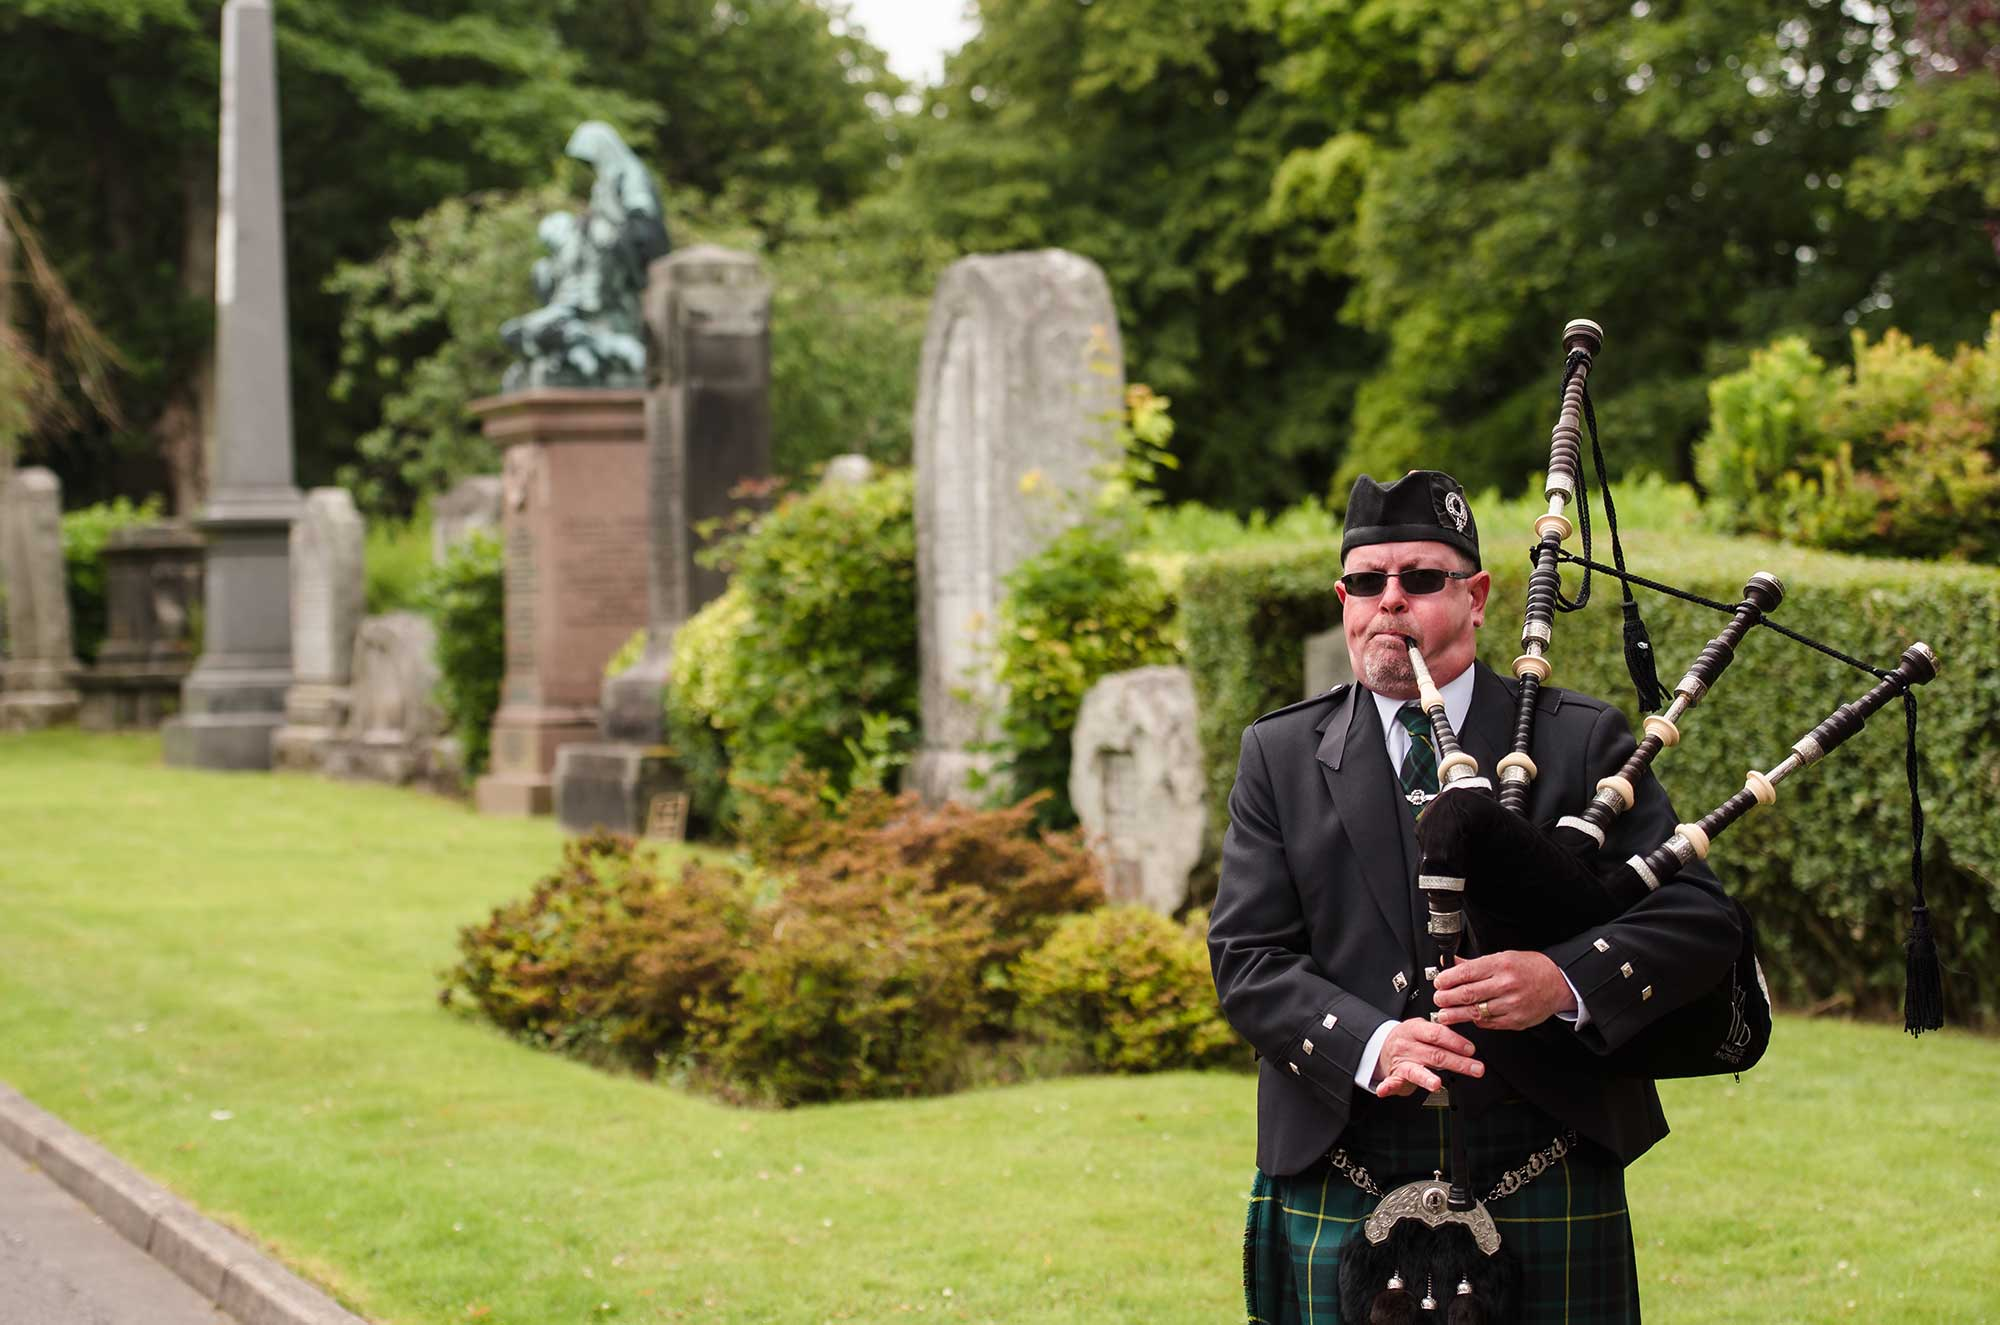 A piper plays the bagpipes at Woodside Cemetery